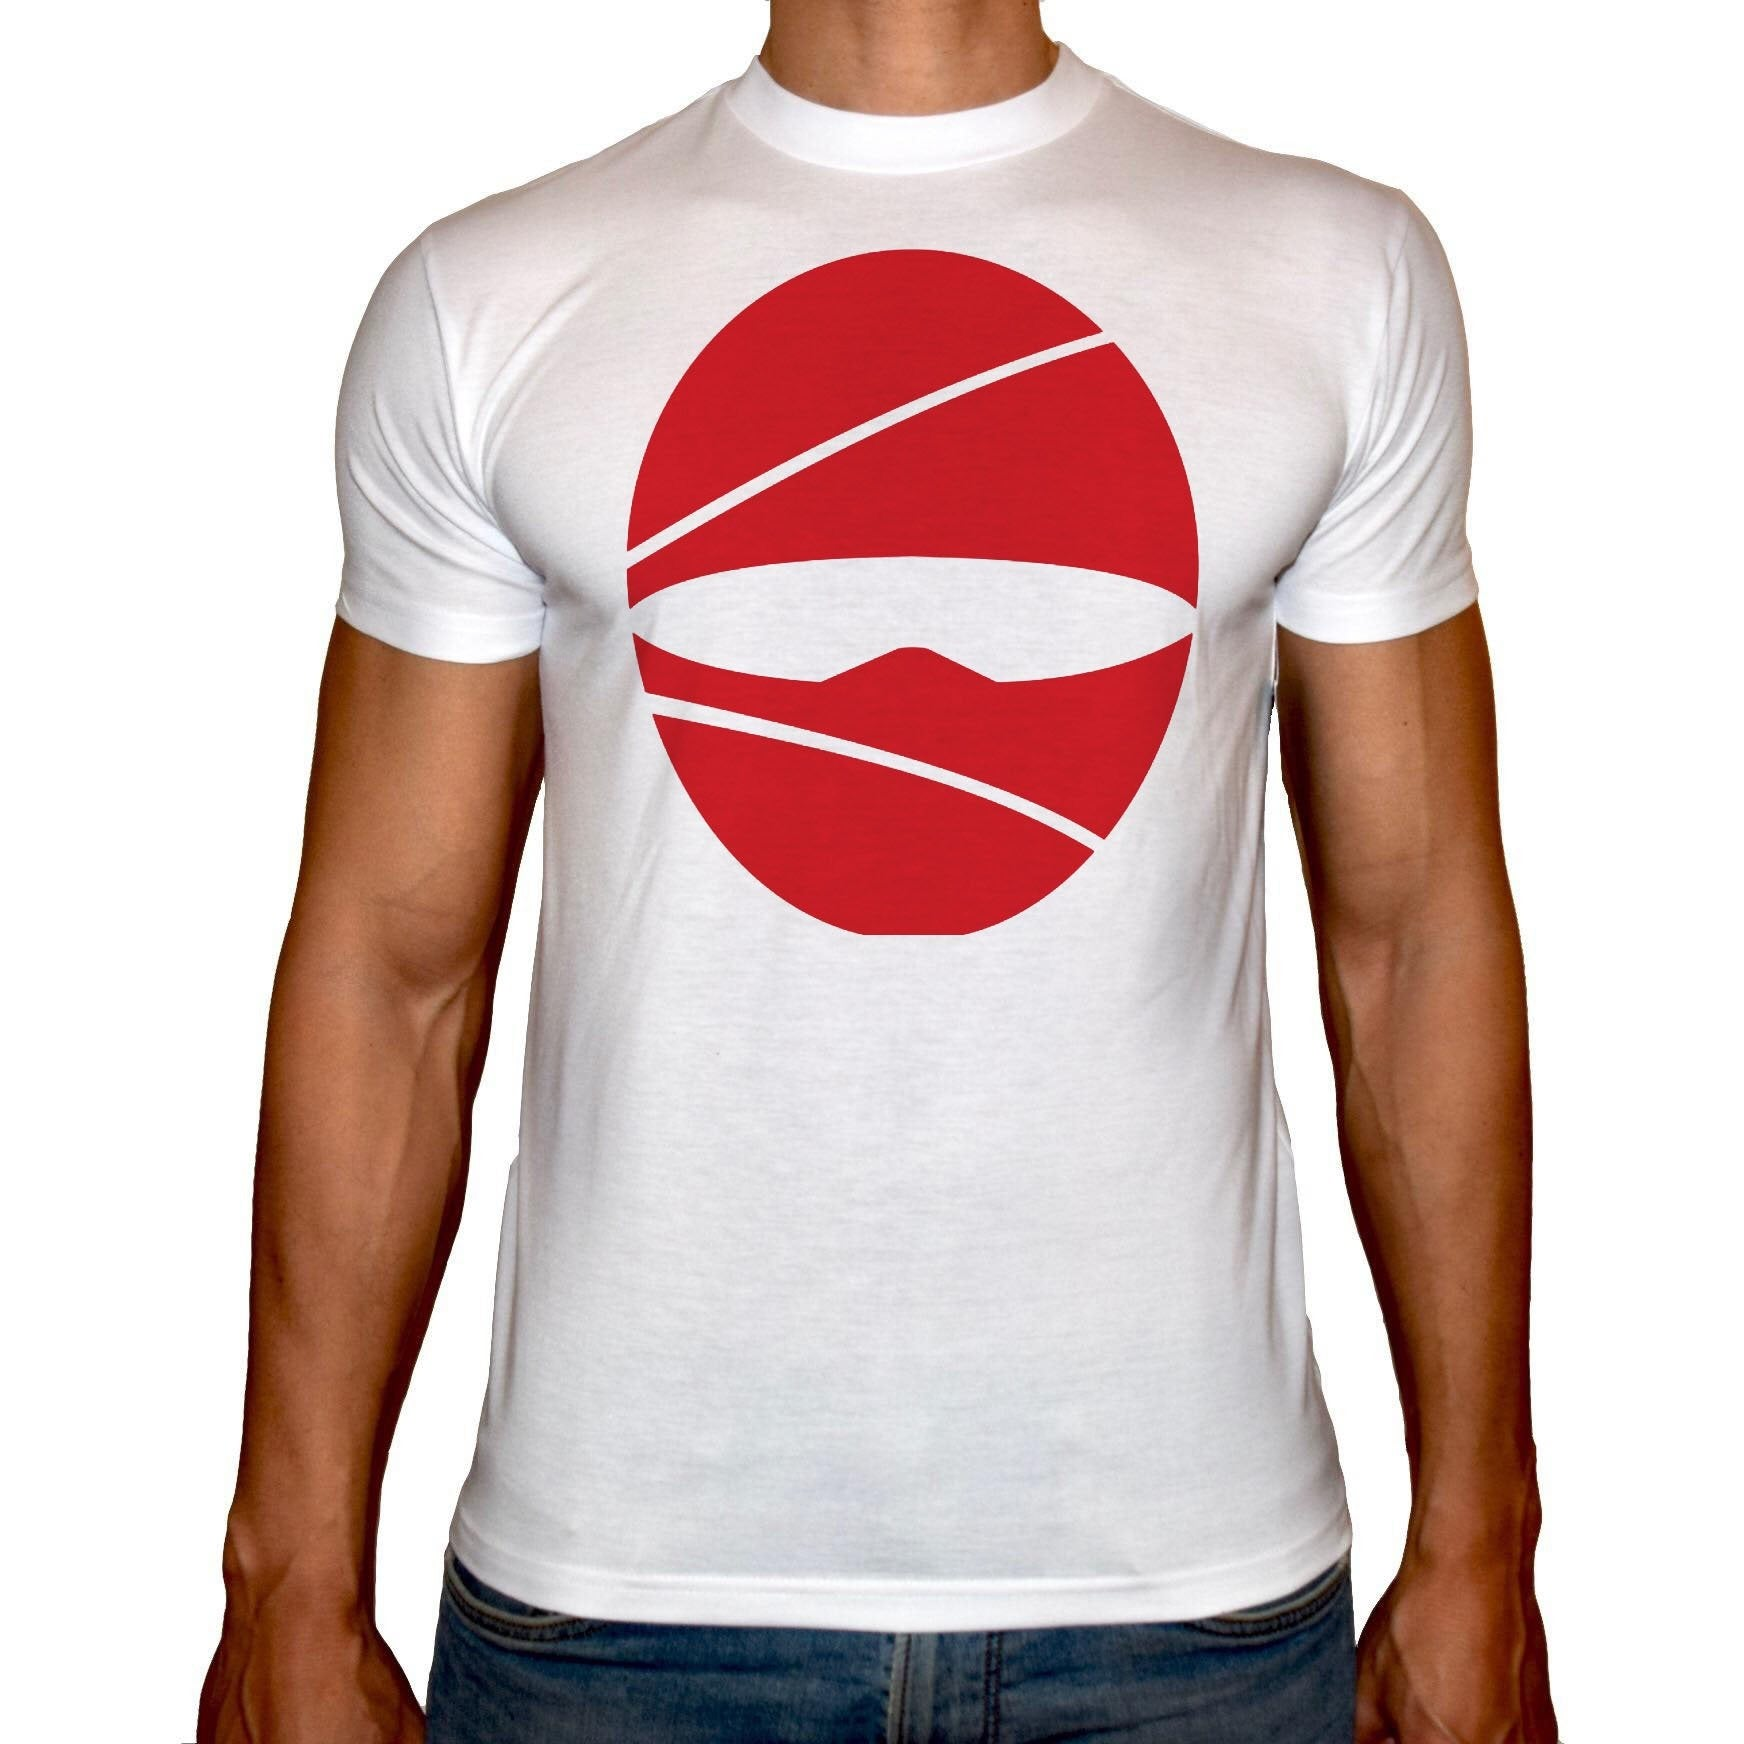 Phoenix WHITE Round Neck Printed T-Shirt Men (Ninja)